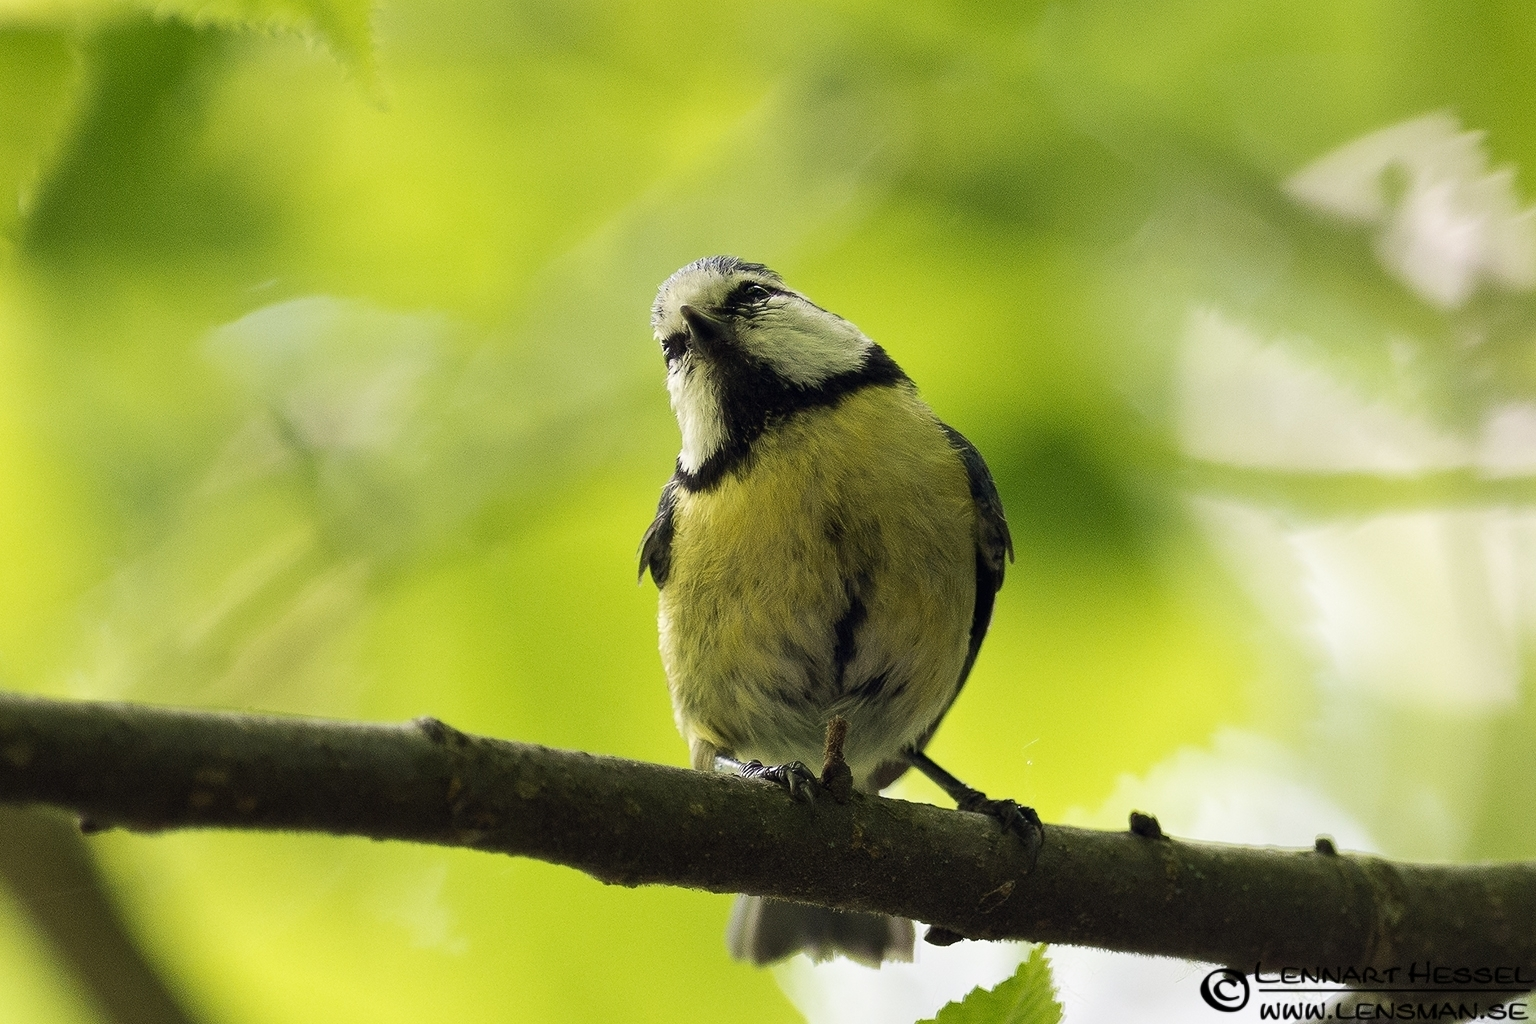 Great Tit at Säveån, Gothenburg